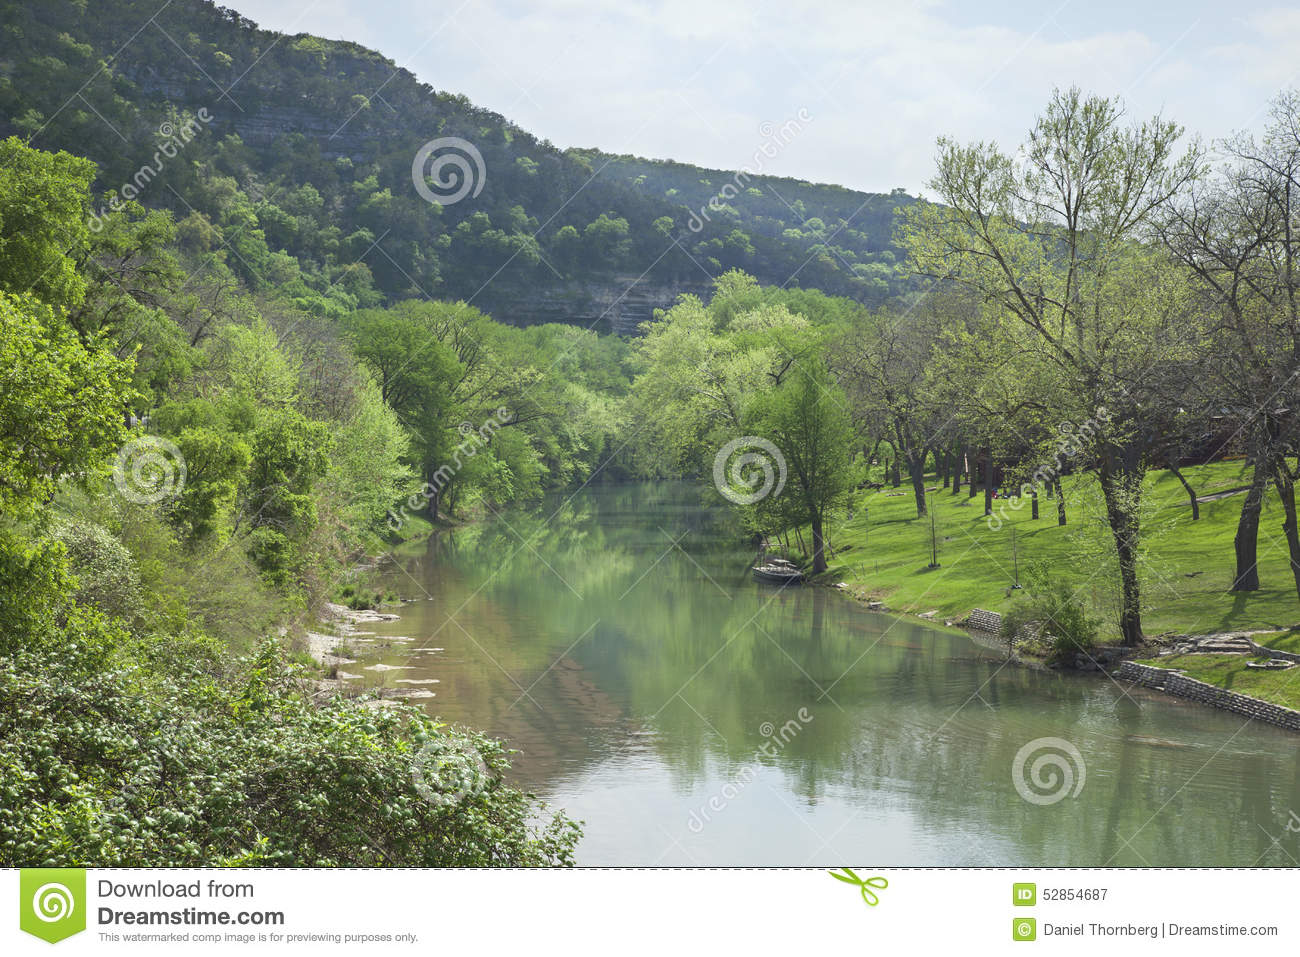 Guadalupe River clipart #16, Download drawings